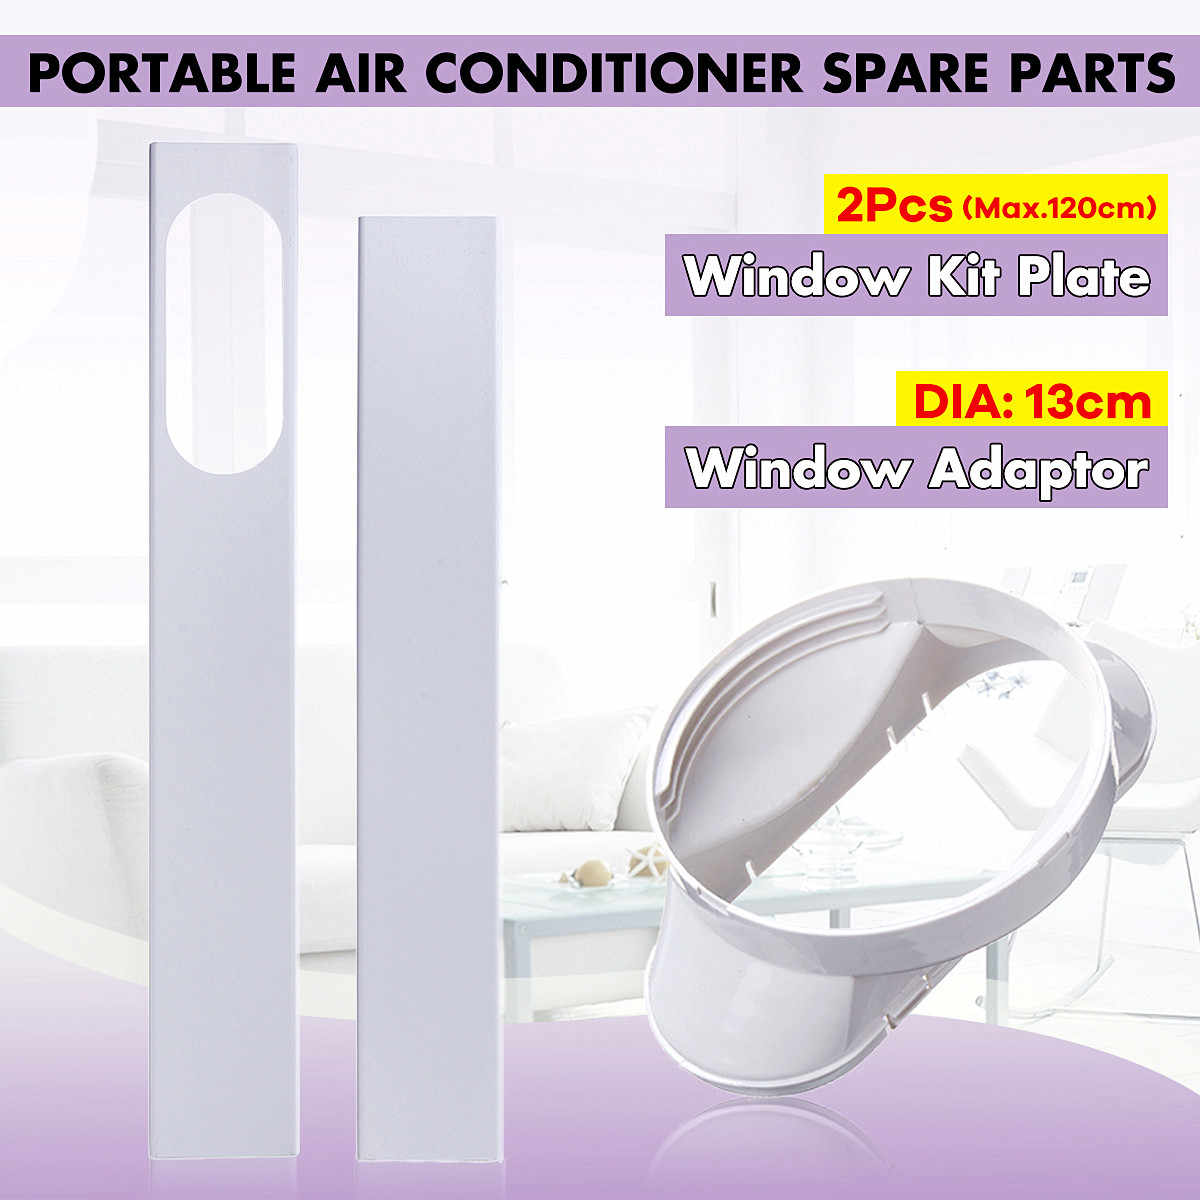 2Pcs Adjustable Window Slide Kit Plate Vent Adapter For Portable Air Conditioner